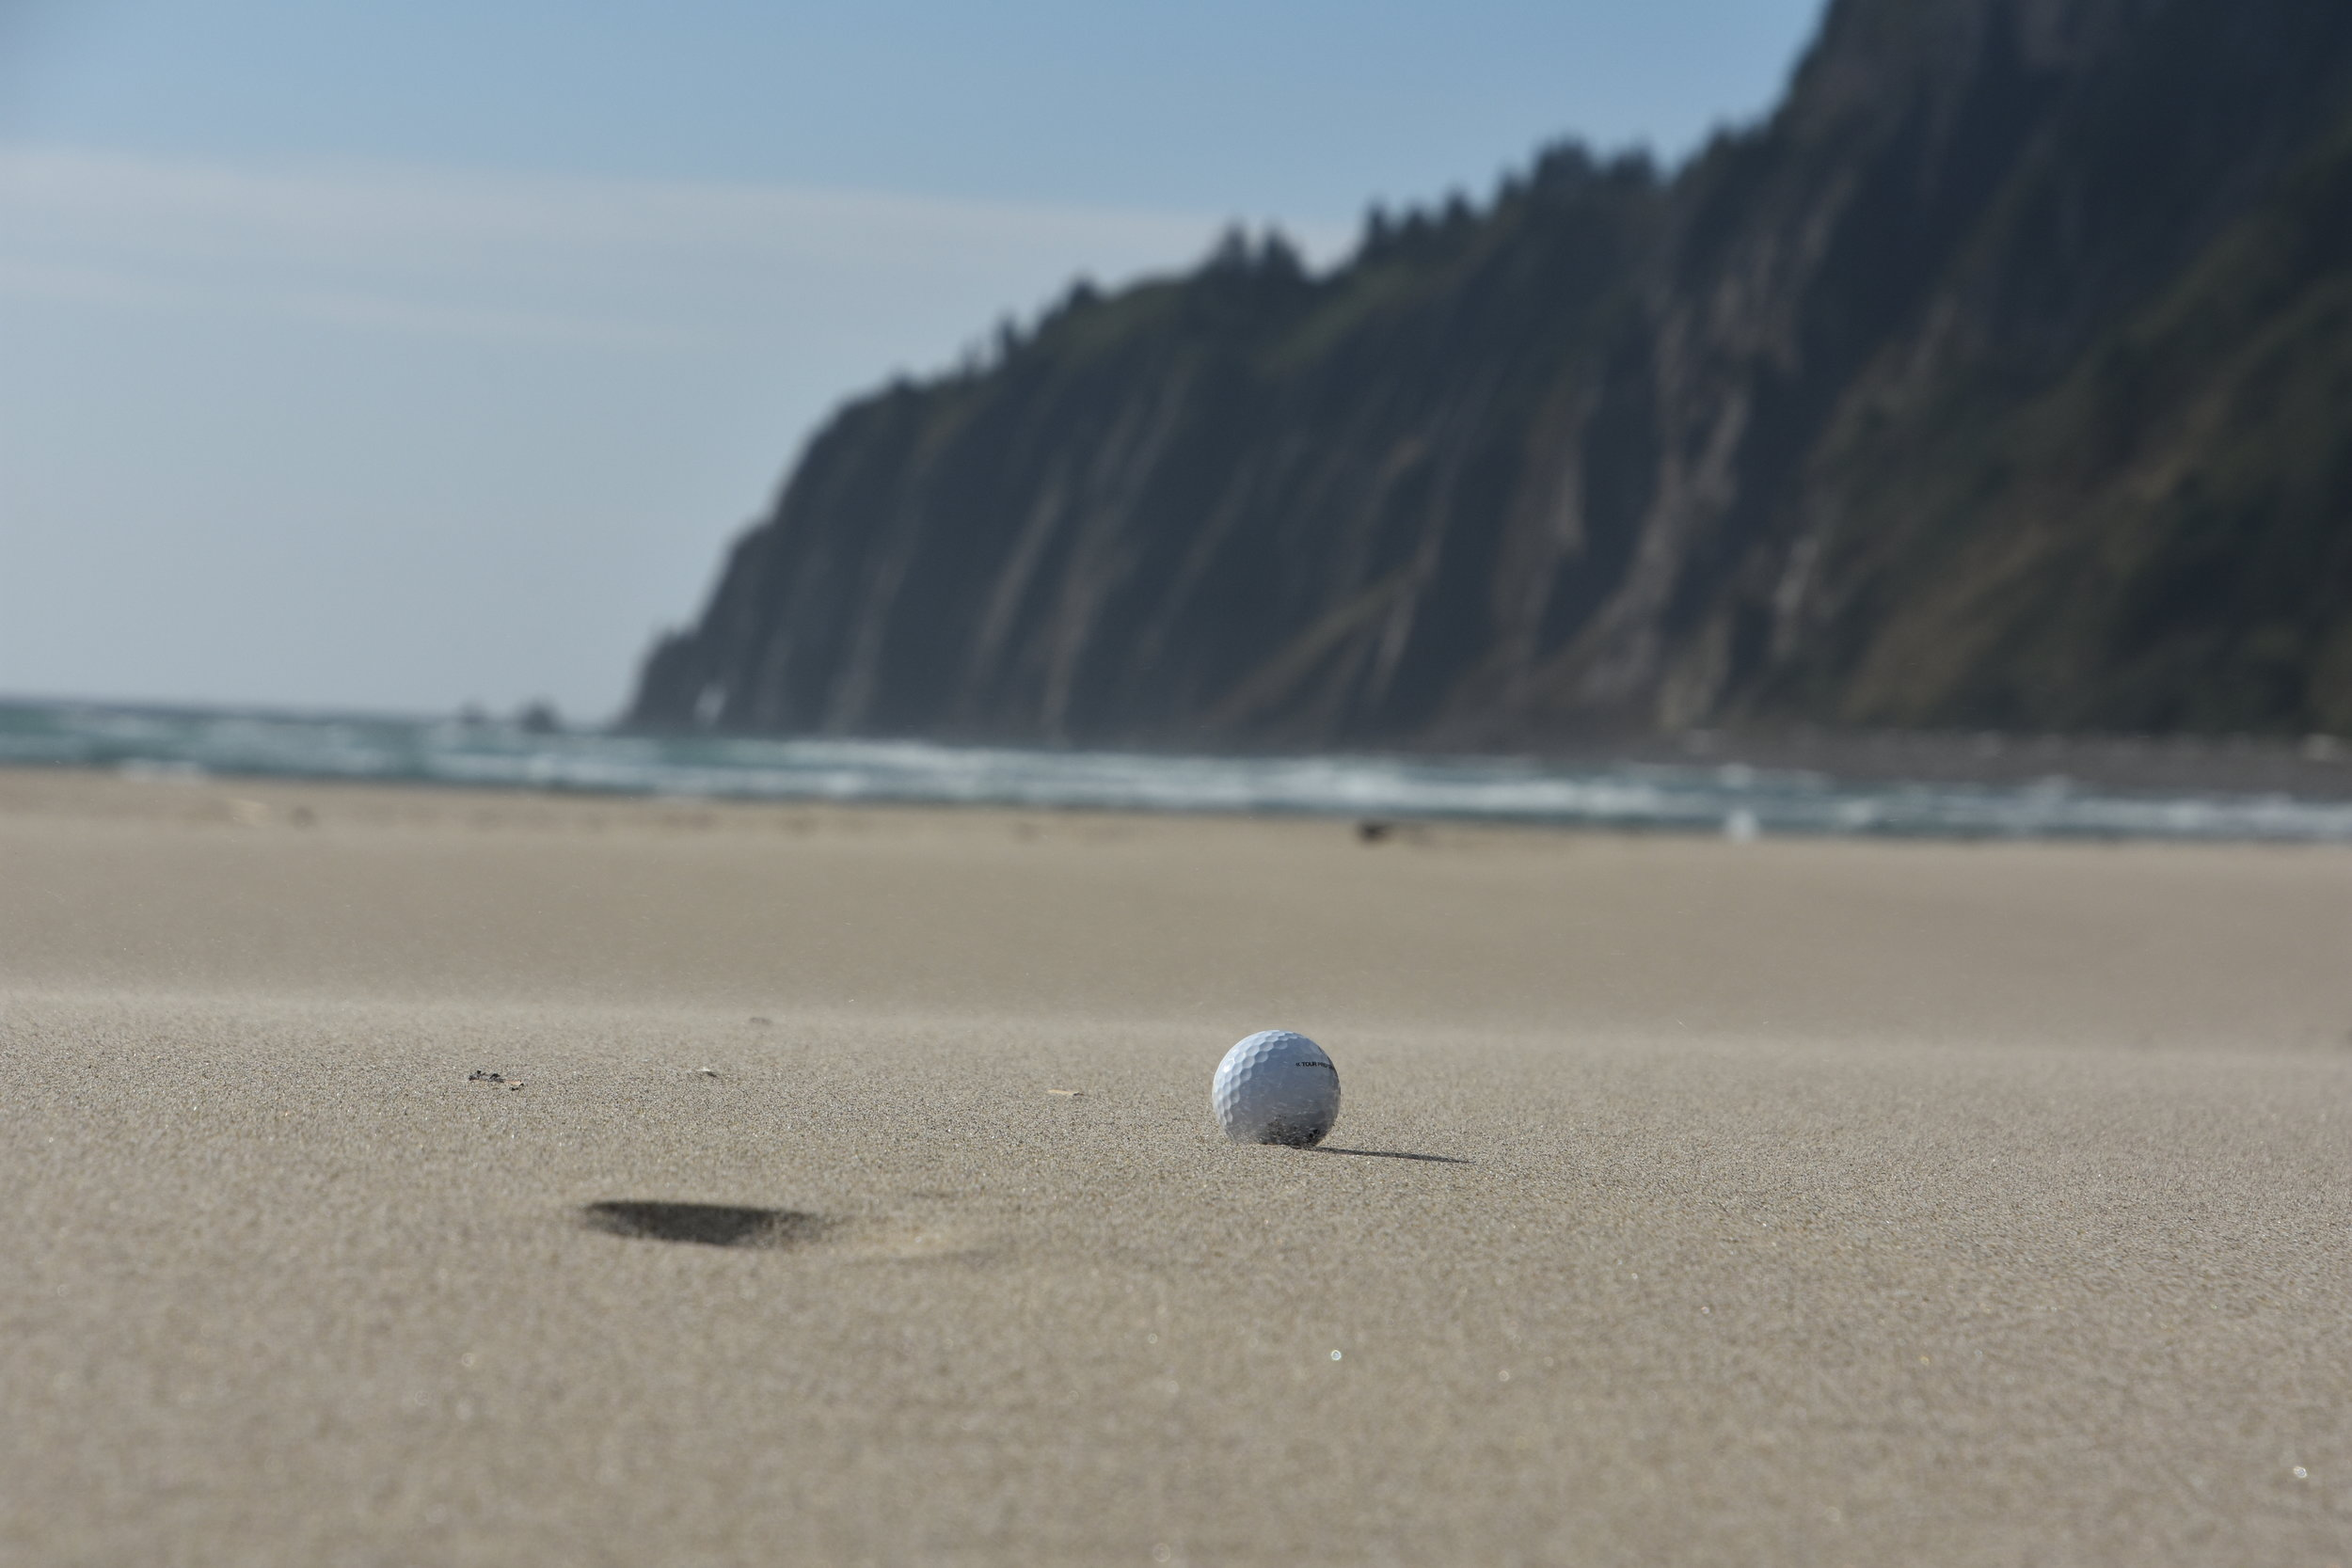 The ball just lies there, waiting, beckoning to be struck.  It rests gently in the sand, tempting you.  Come and play!!